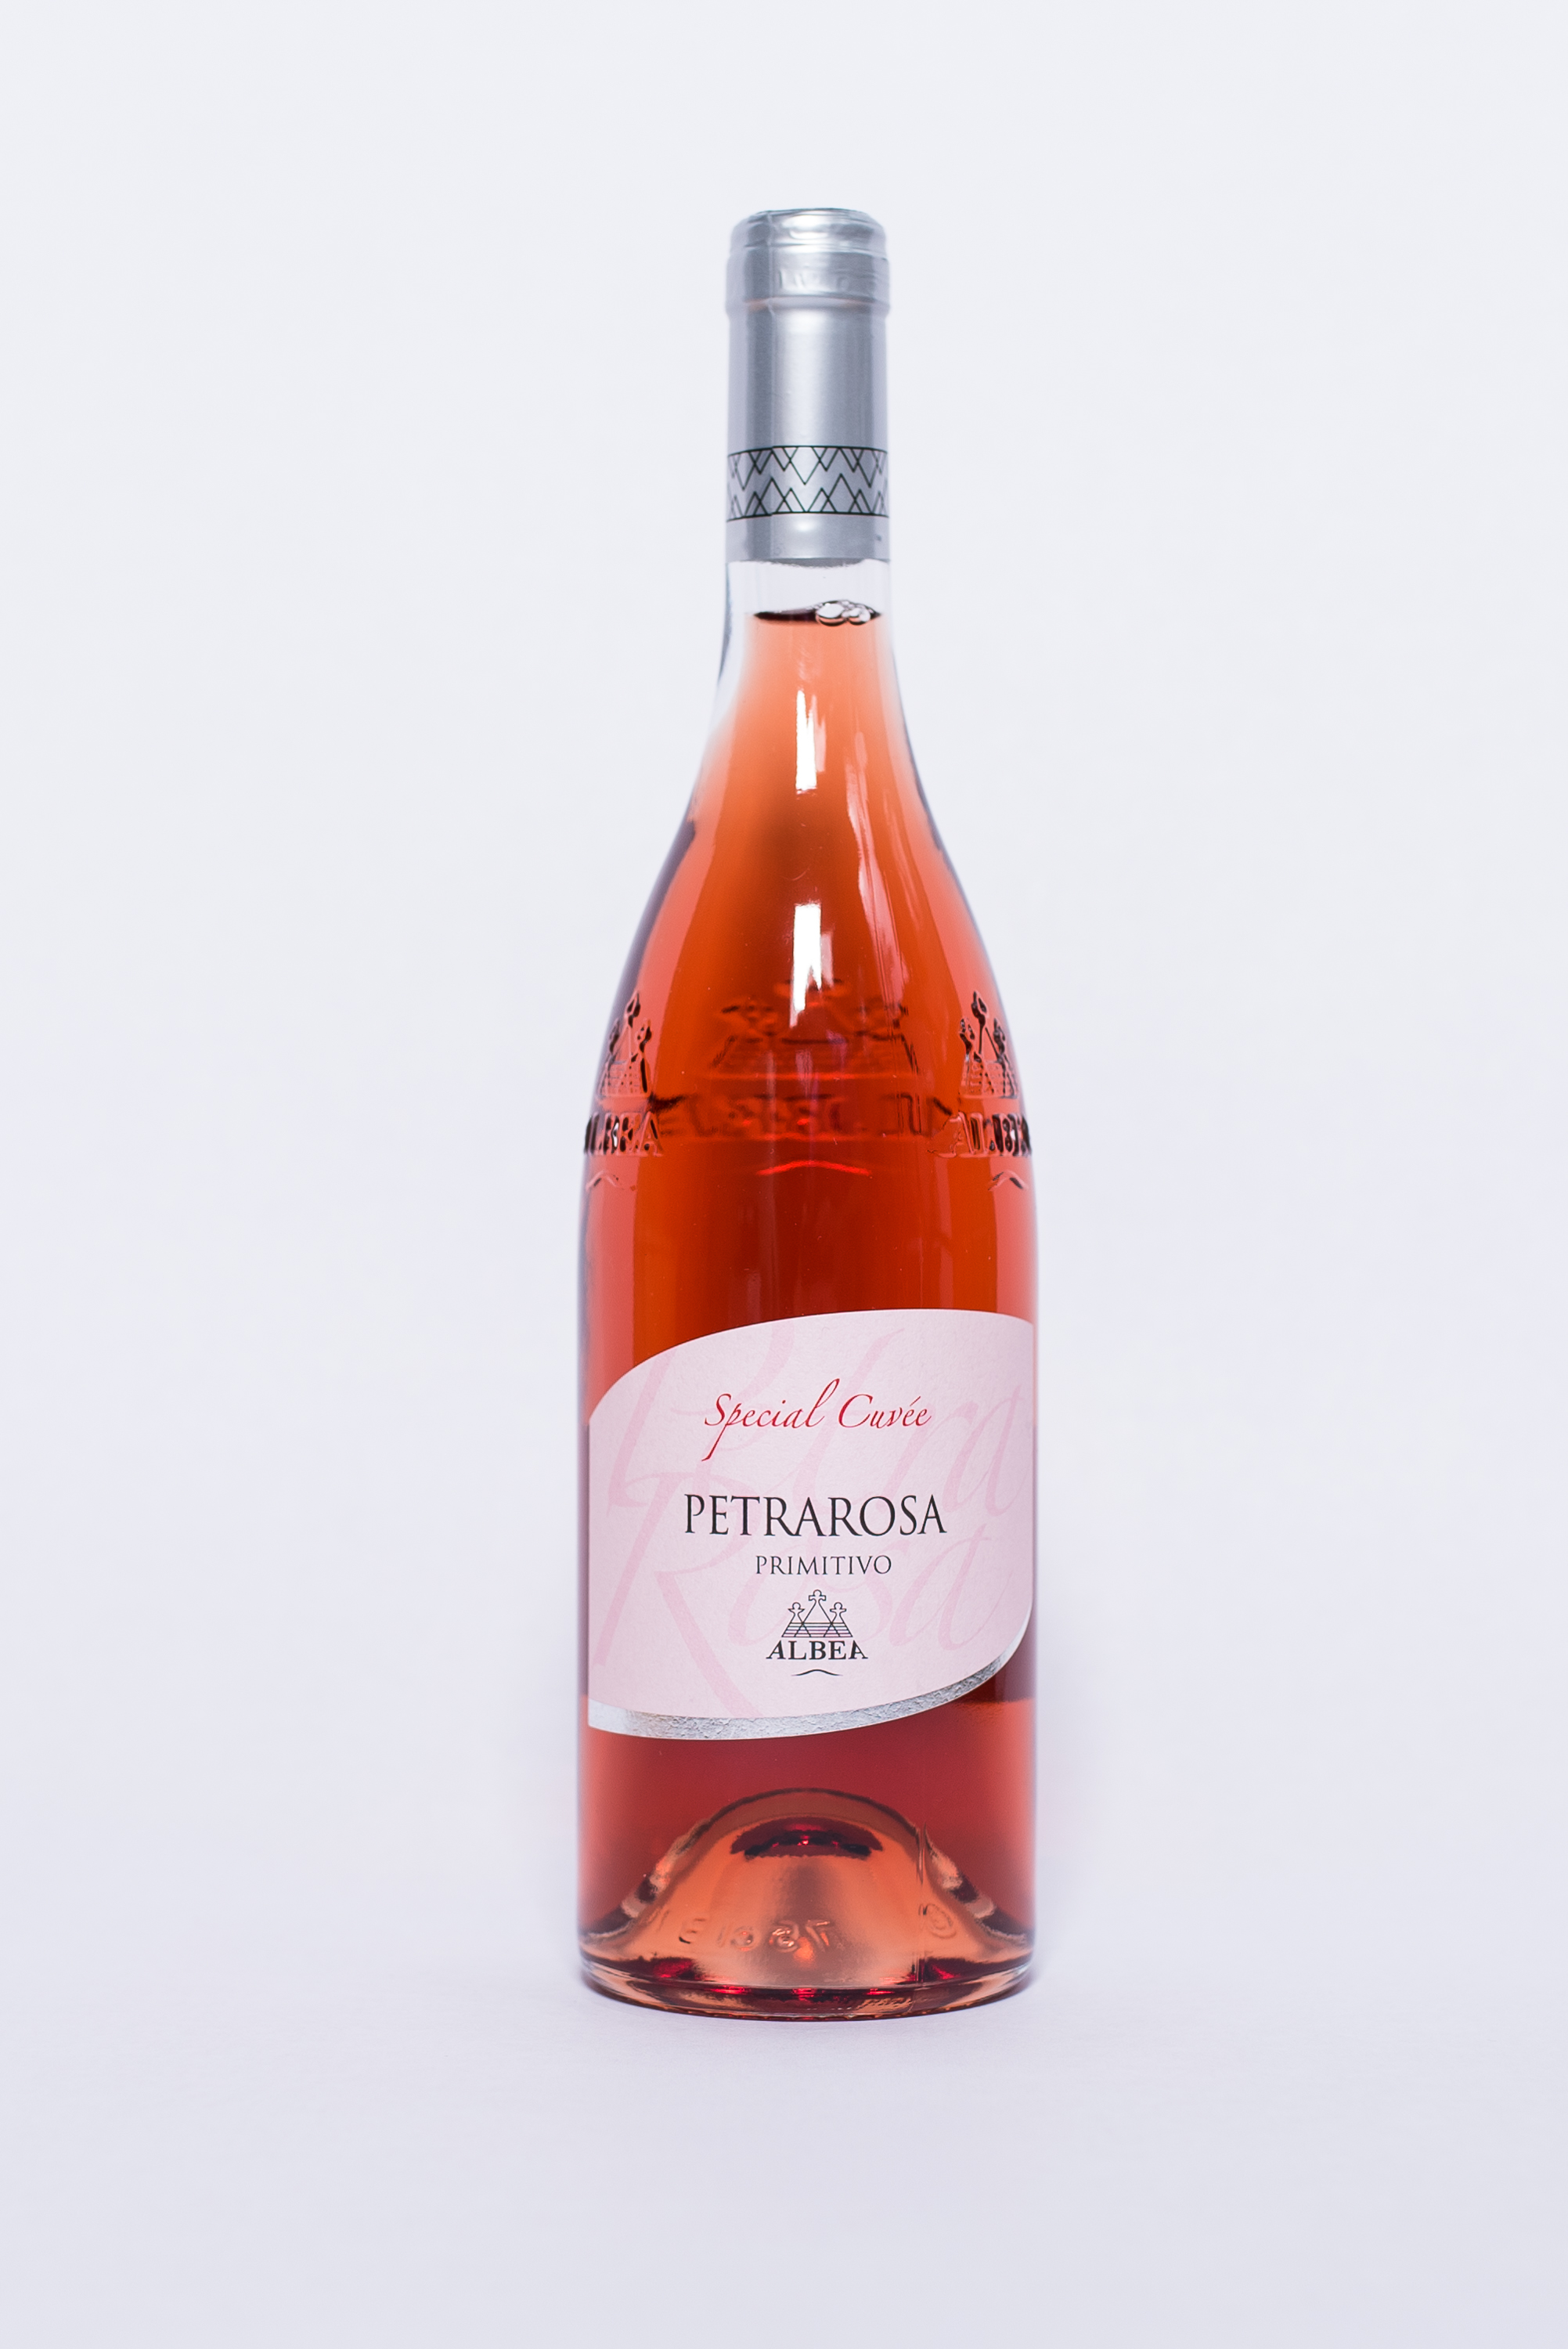 Petrarosa Rosato    Producer:   Cantina Albea    Region:  Puglia  Grapes:  Primitivo di Gioia 100%  Nose:  Floral and spicy notes with slight hints of berries, wild rose and pomegranate.   Taste:  Freshness and minerality well balanced by the volume and final taste of outstanding elegance wine.